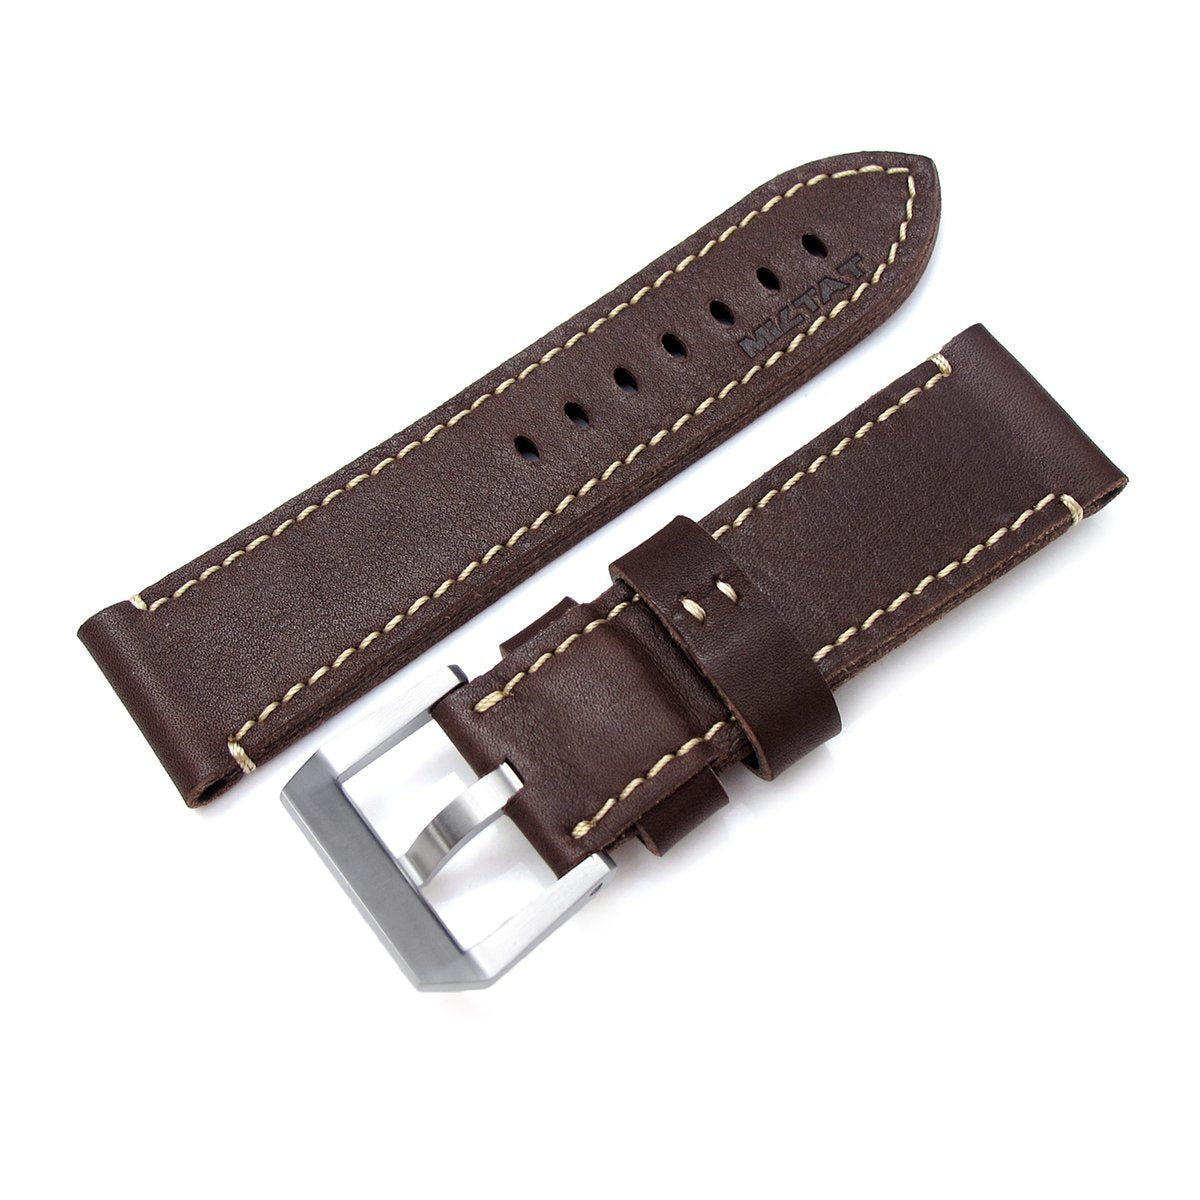 26mm MiLTAT Cashmere Calf Dark Brown Watch Strap Beige Hand Stitching Strapcode Watch Bands